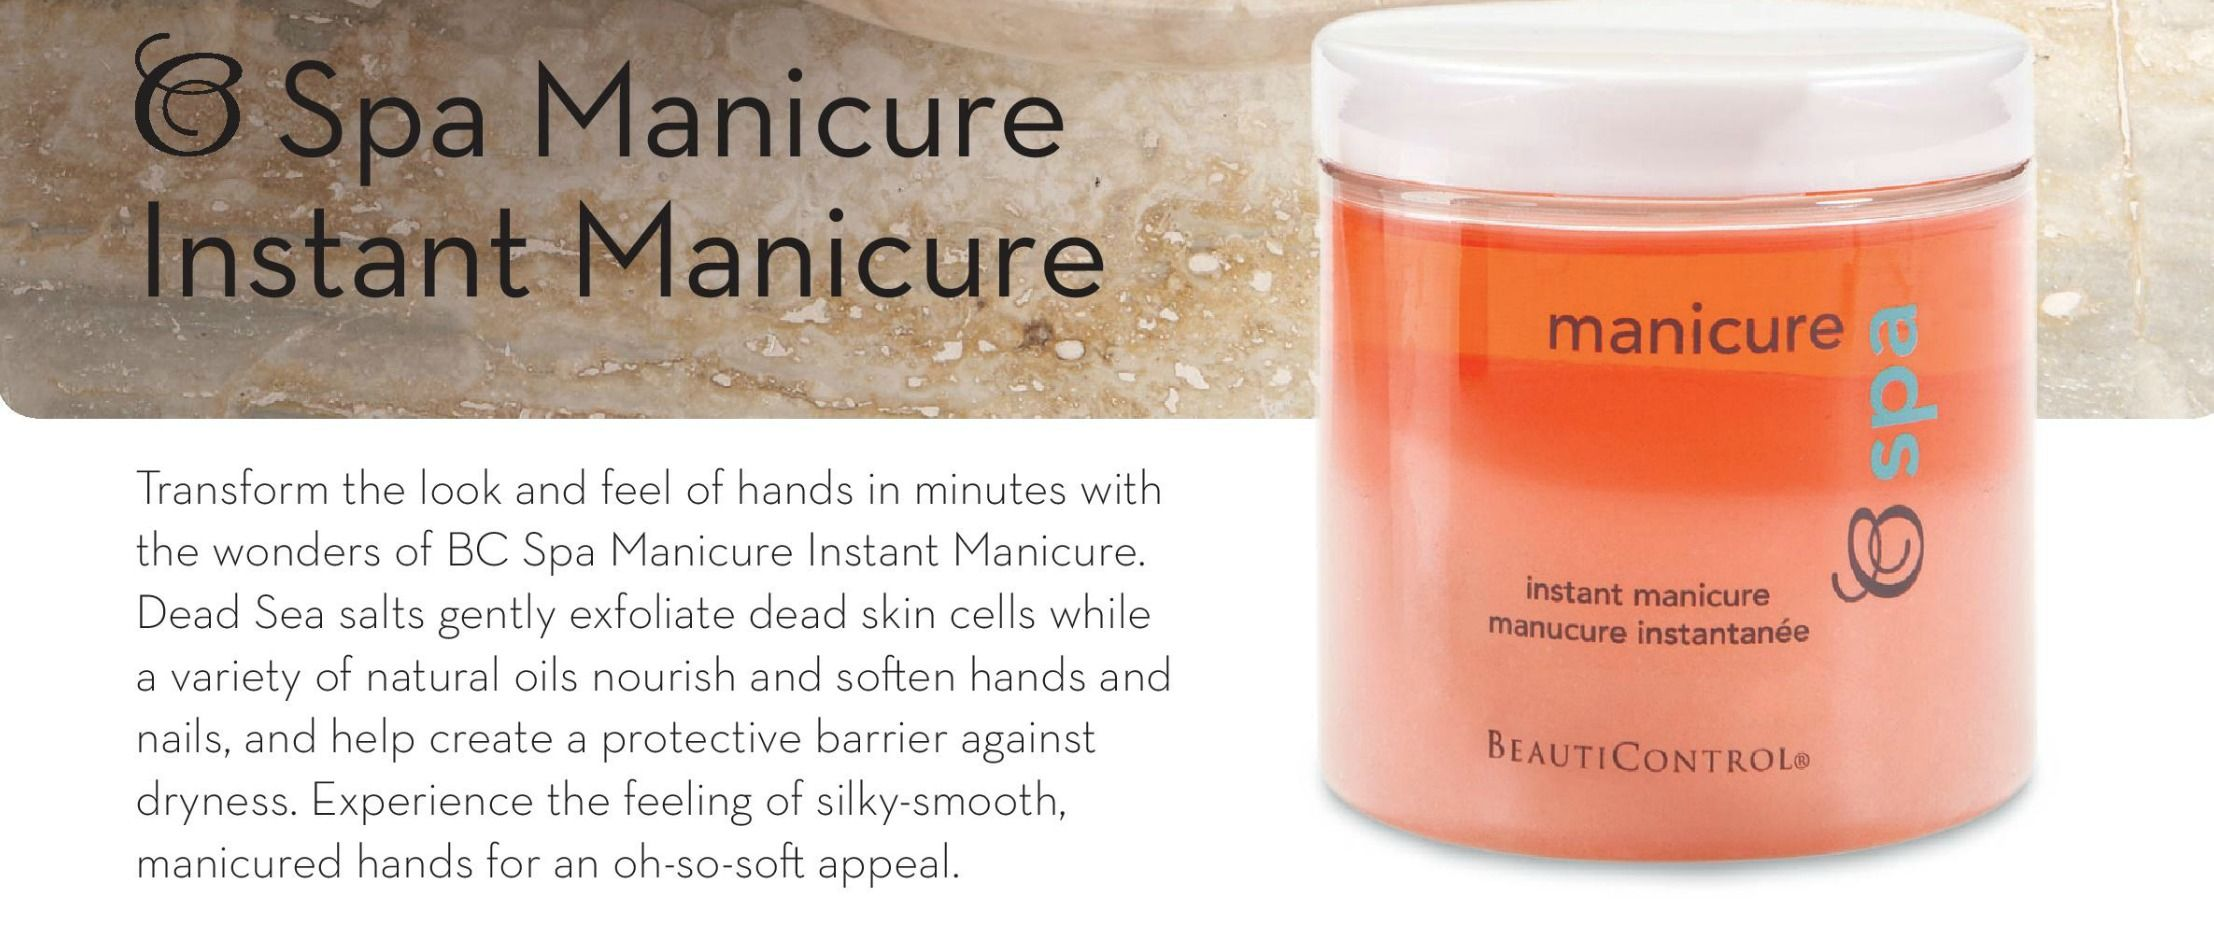 Instant #Manicure, Gently exfoliate with Dead Sea salt as natural oils moisturize and help protect your hands. #skin